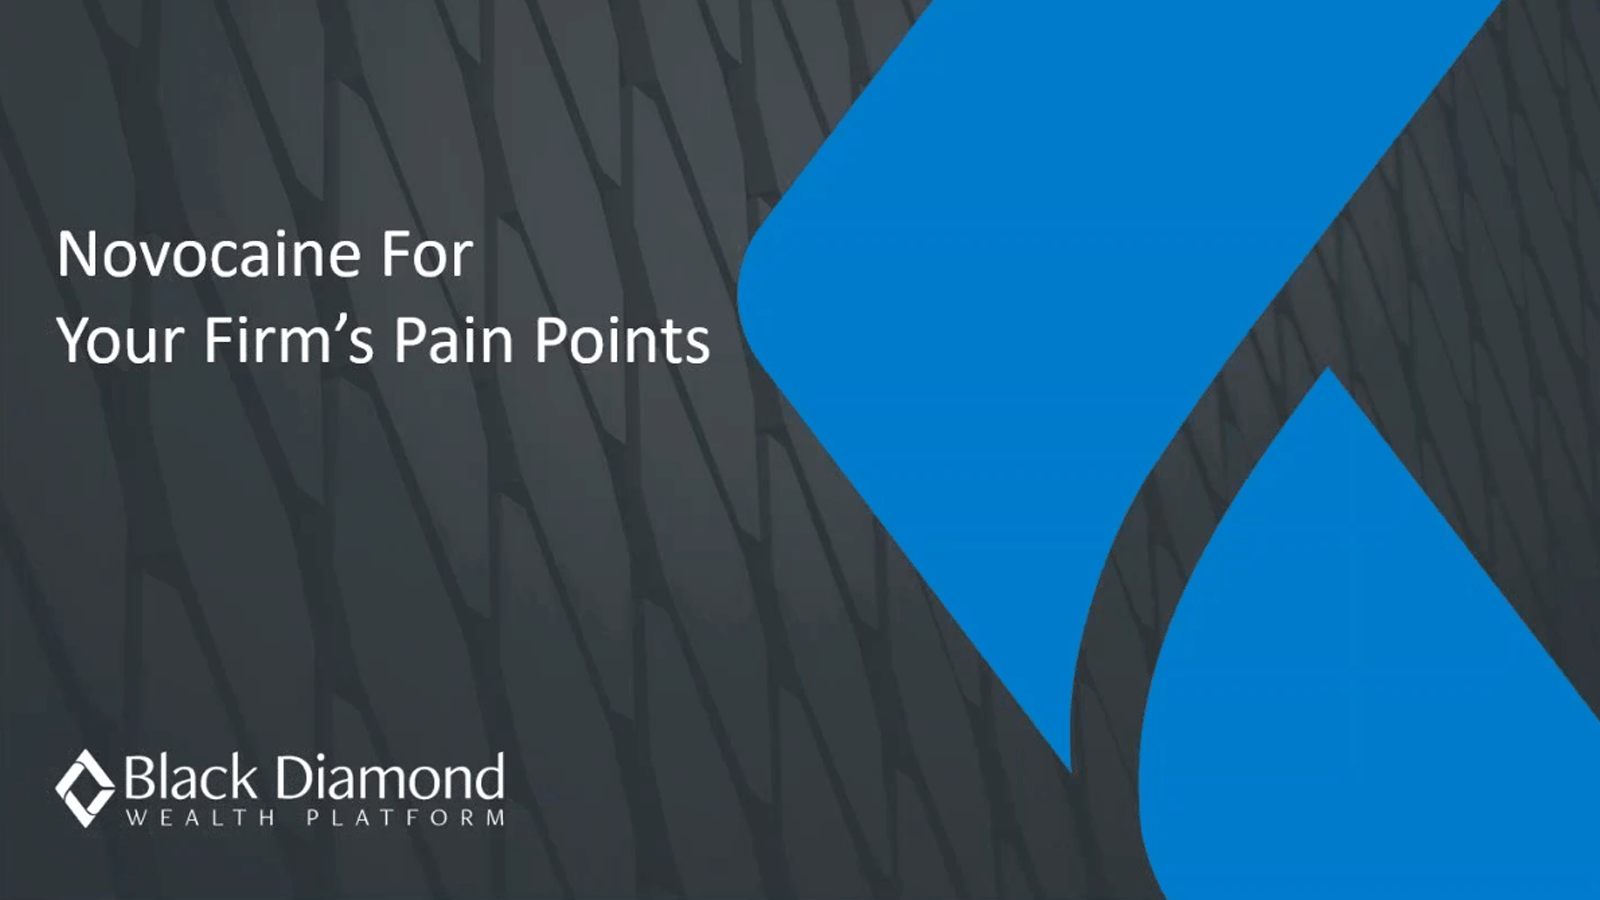 poster image for Novocain for your firm's pain points